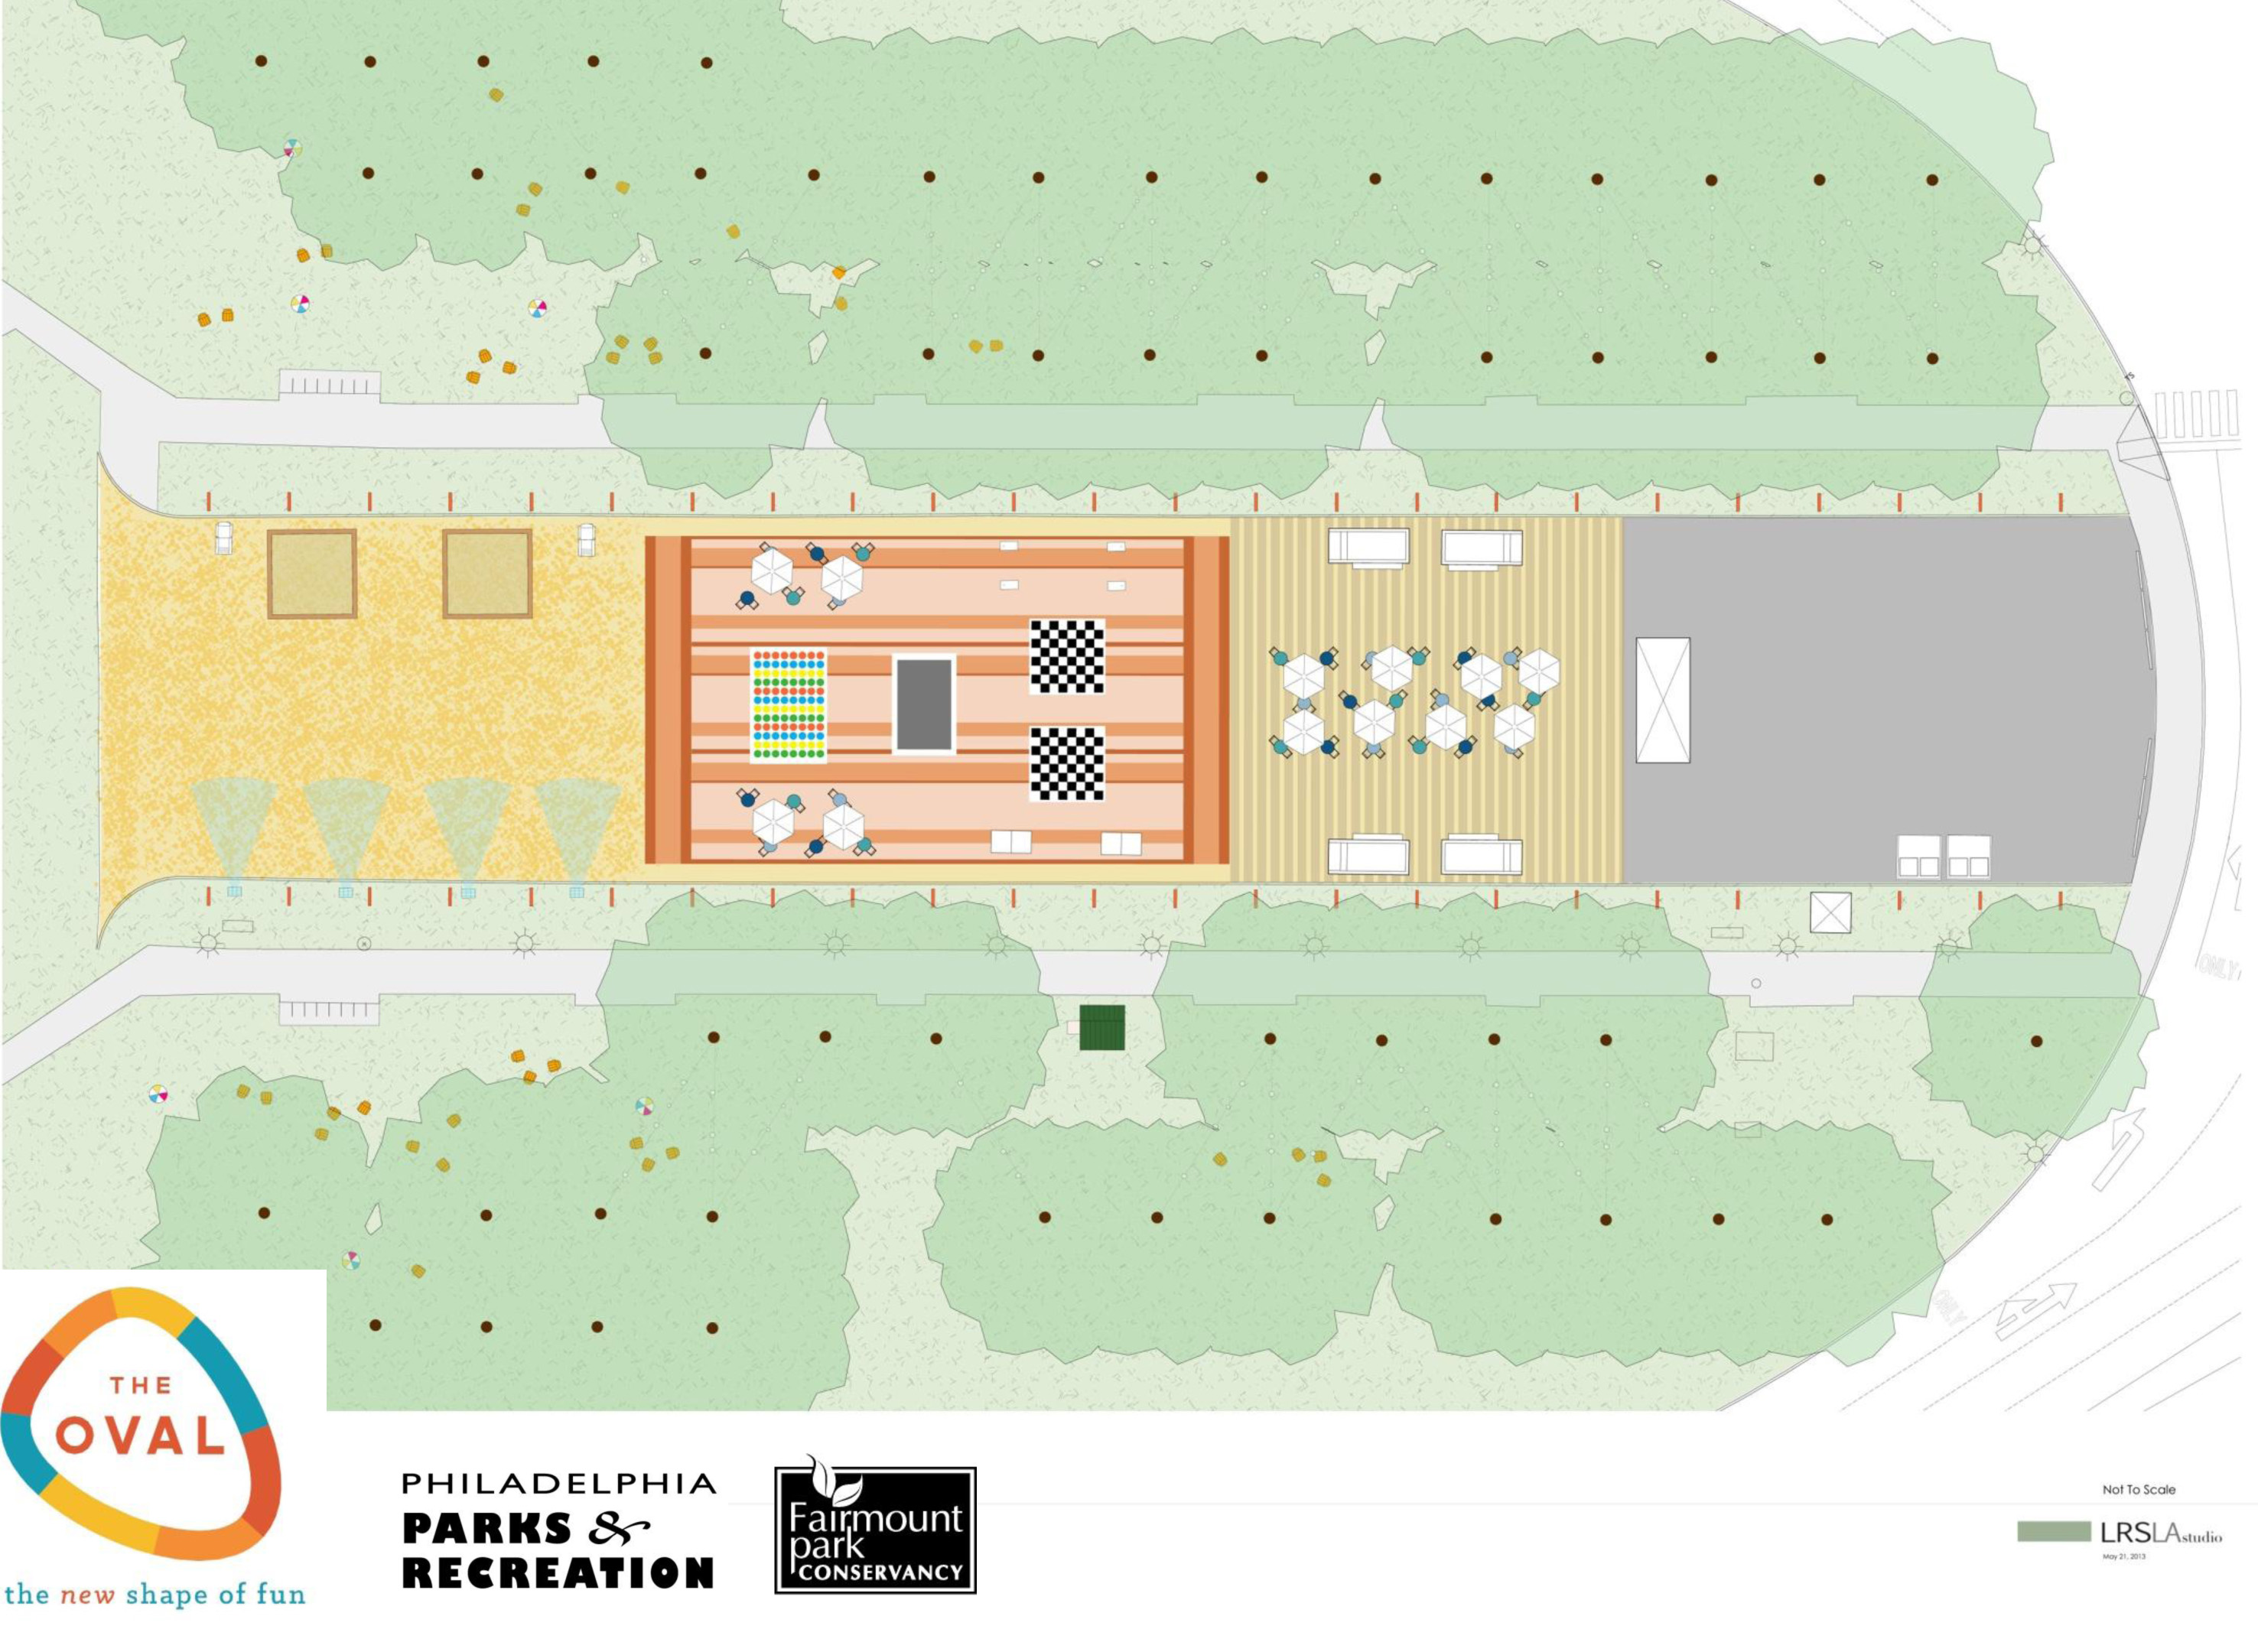 Plan of The Oval: from left to right: The beach, the blanket, and the boardwalk | LRSLA studio